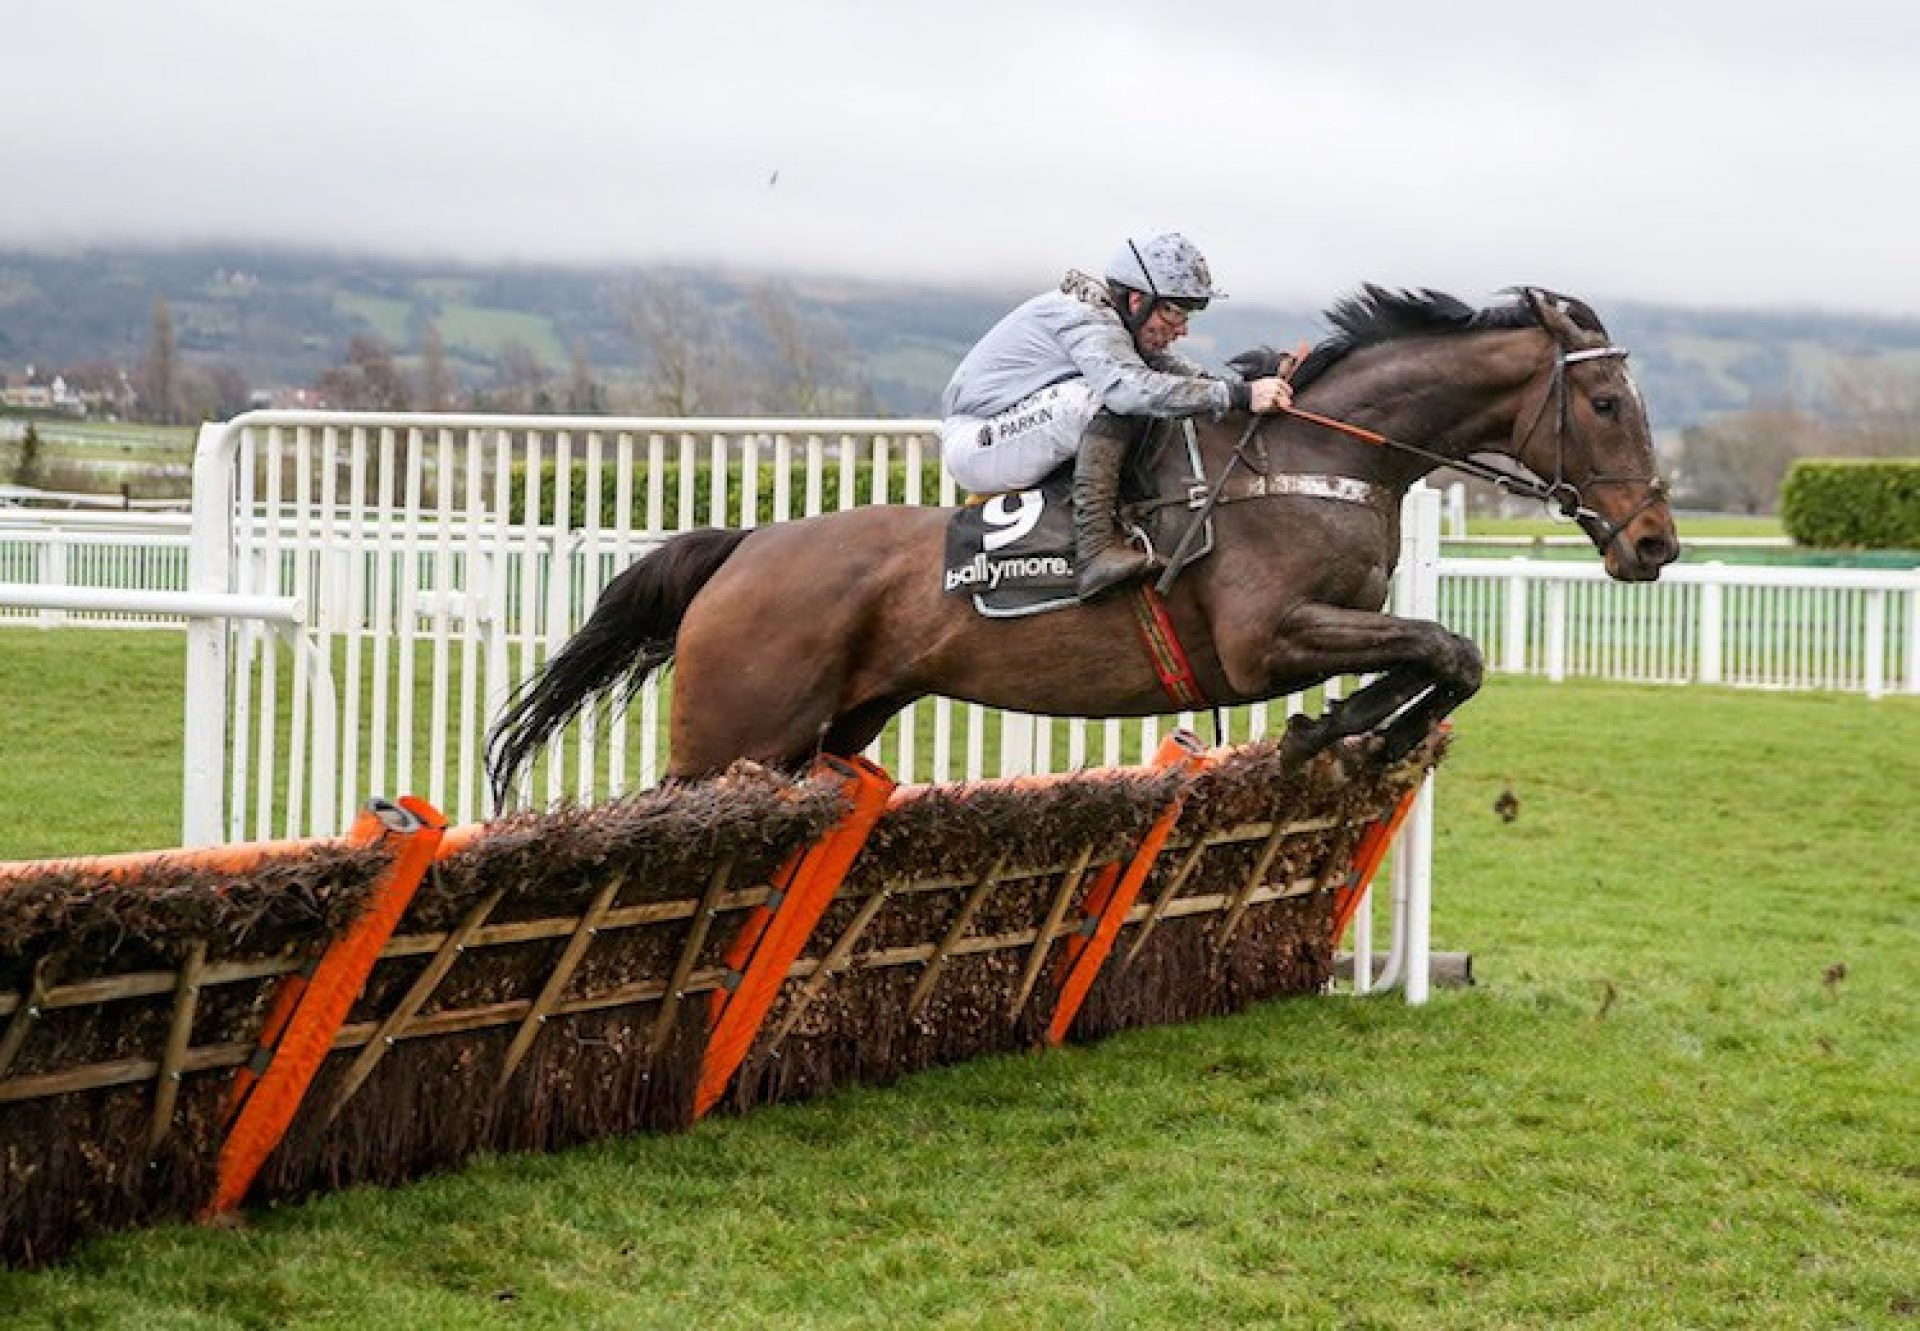 Santini (Milan) winning the G2 Ballymore Classic Novices' Hurdle at Cheltenham